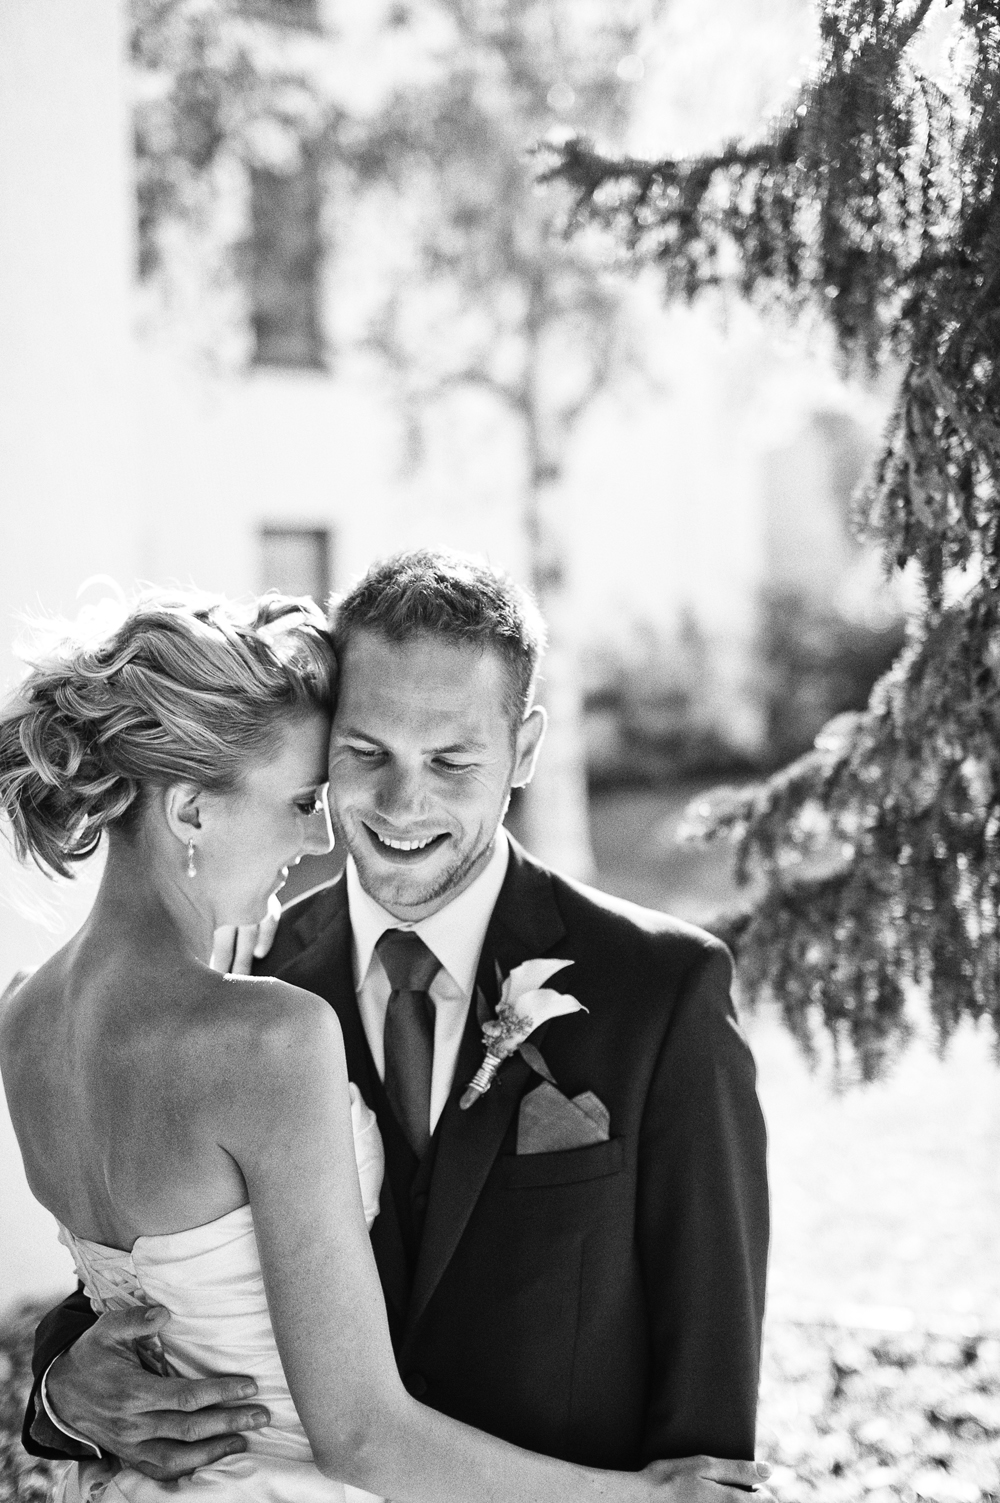 edmonton_wedding_dj_leanne_2.jpg